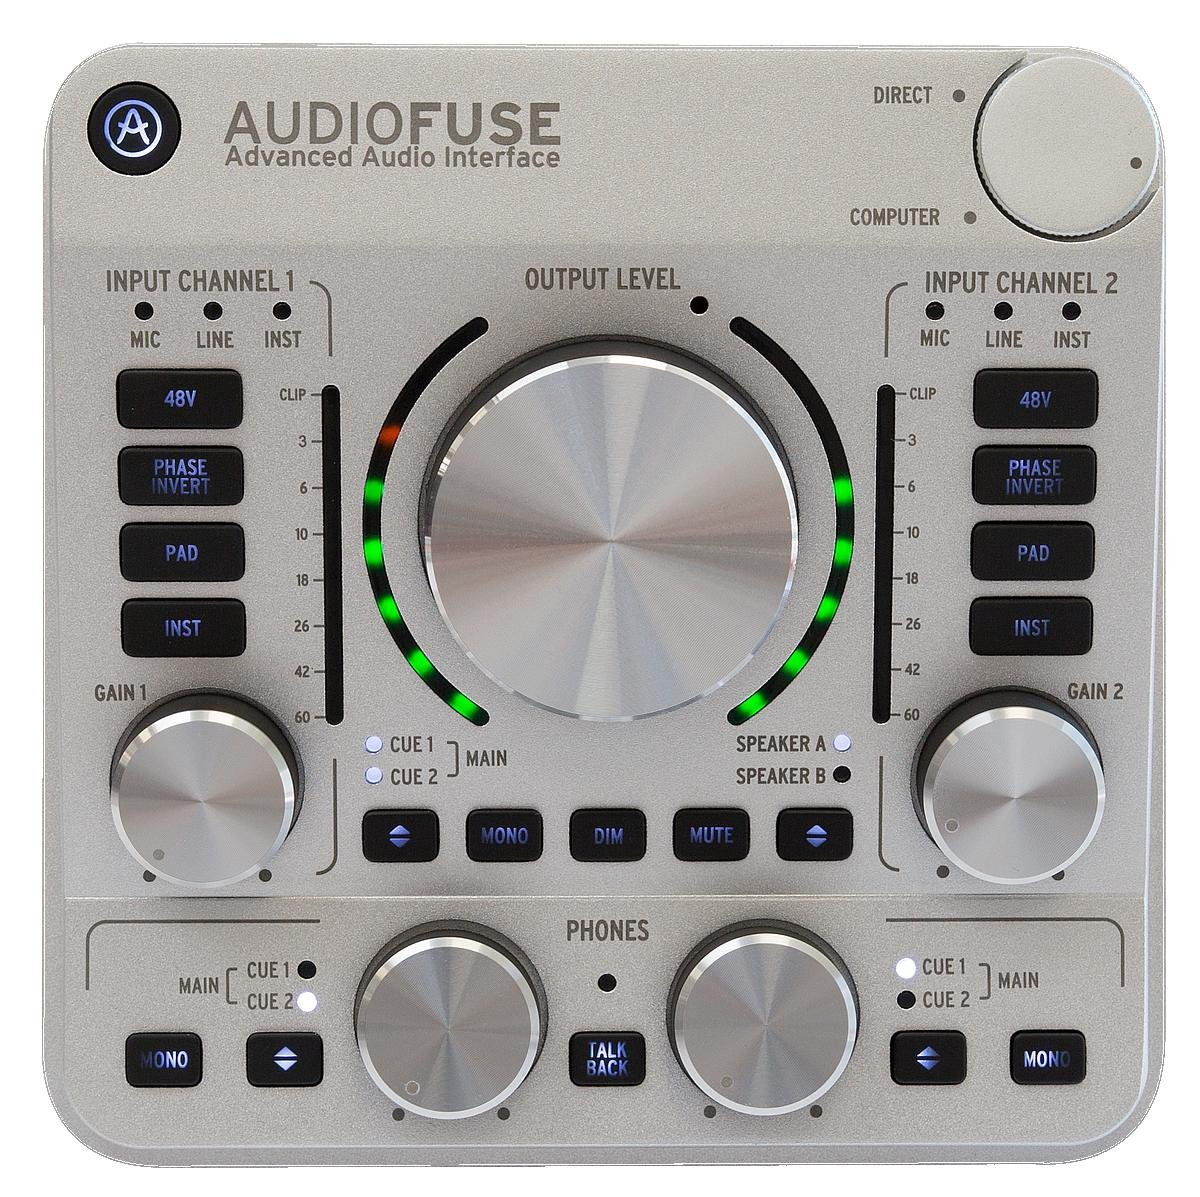 Arturia Audiofuse Classic Silver Sweetwater Audio Fuse Box Image 1